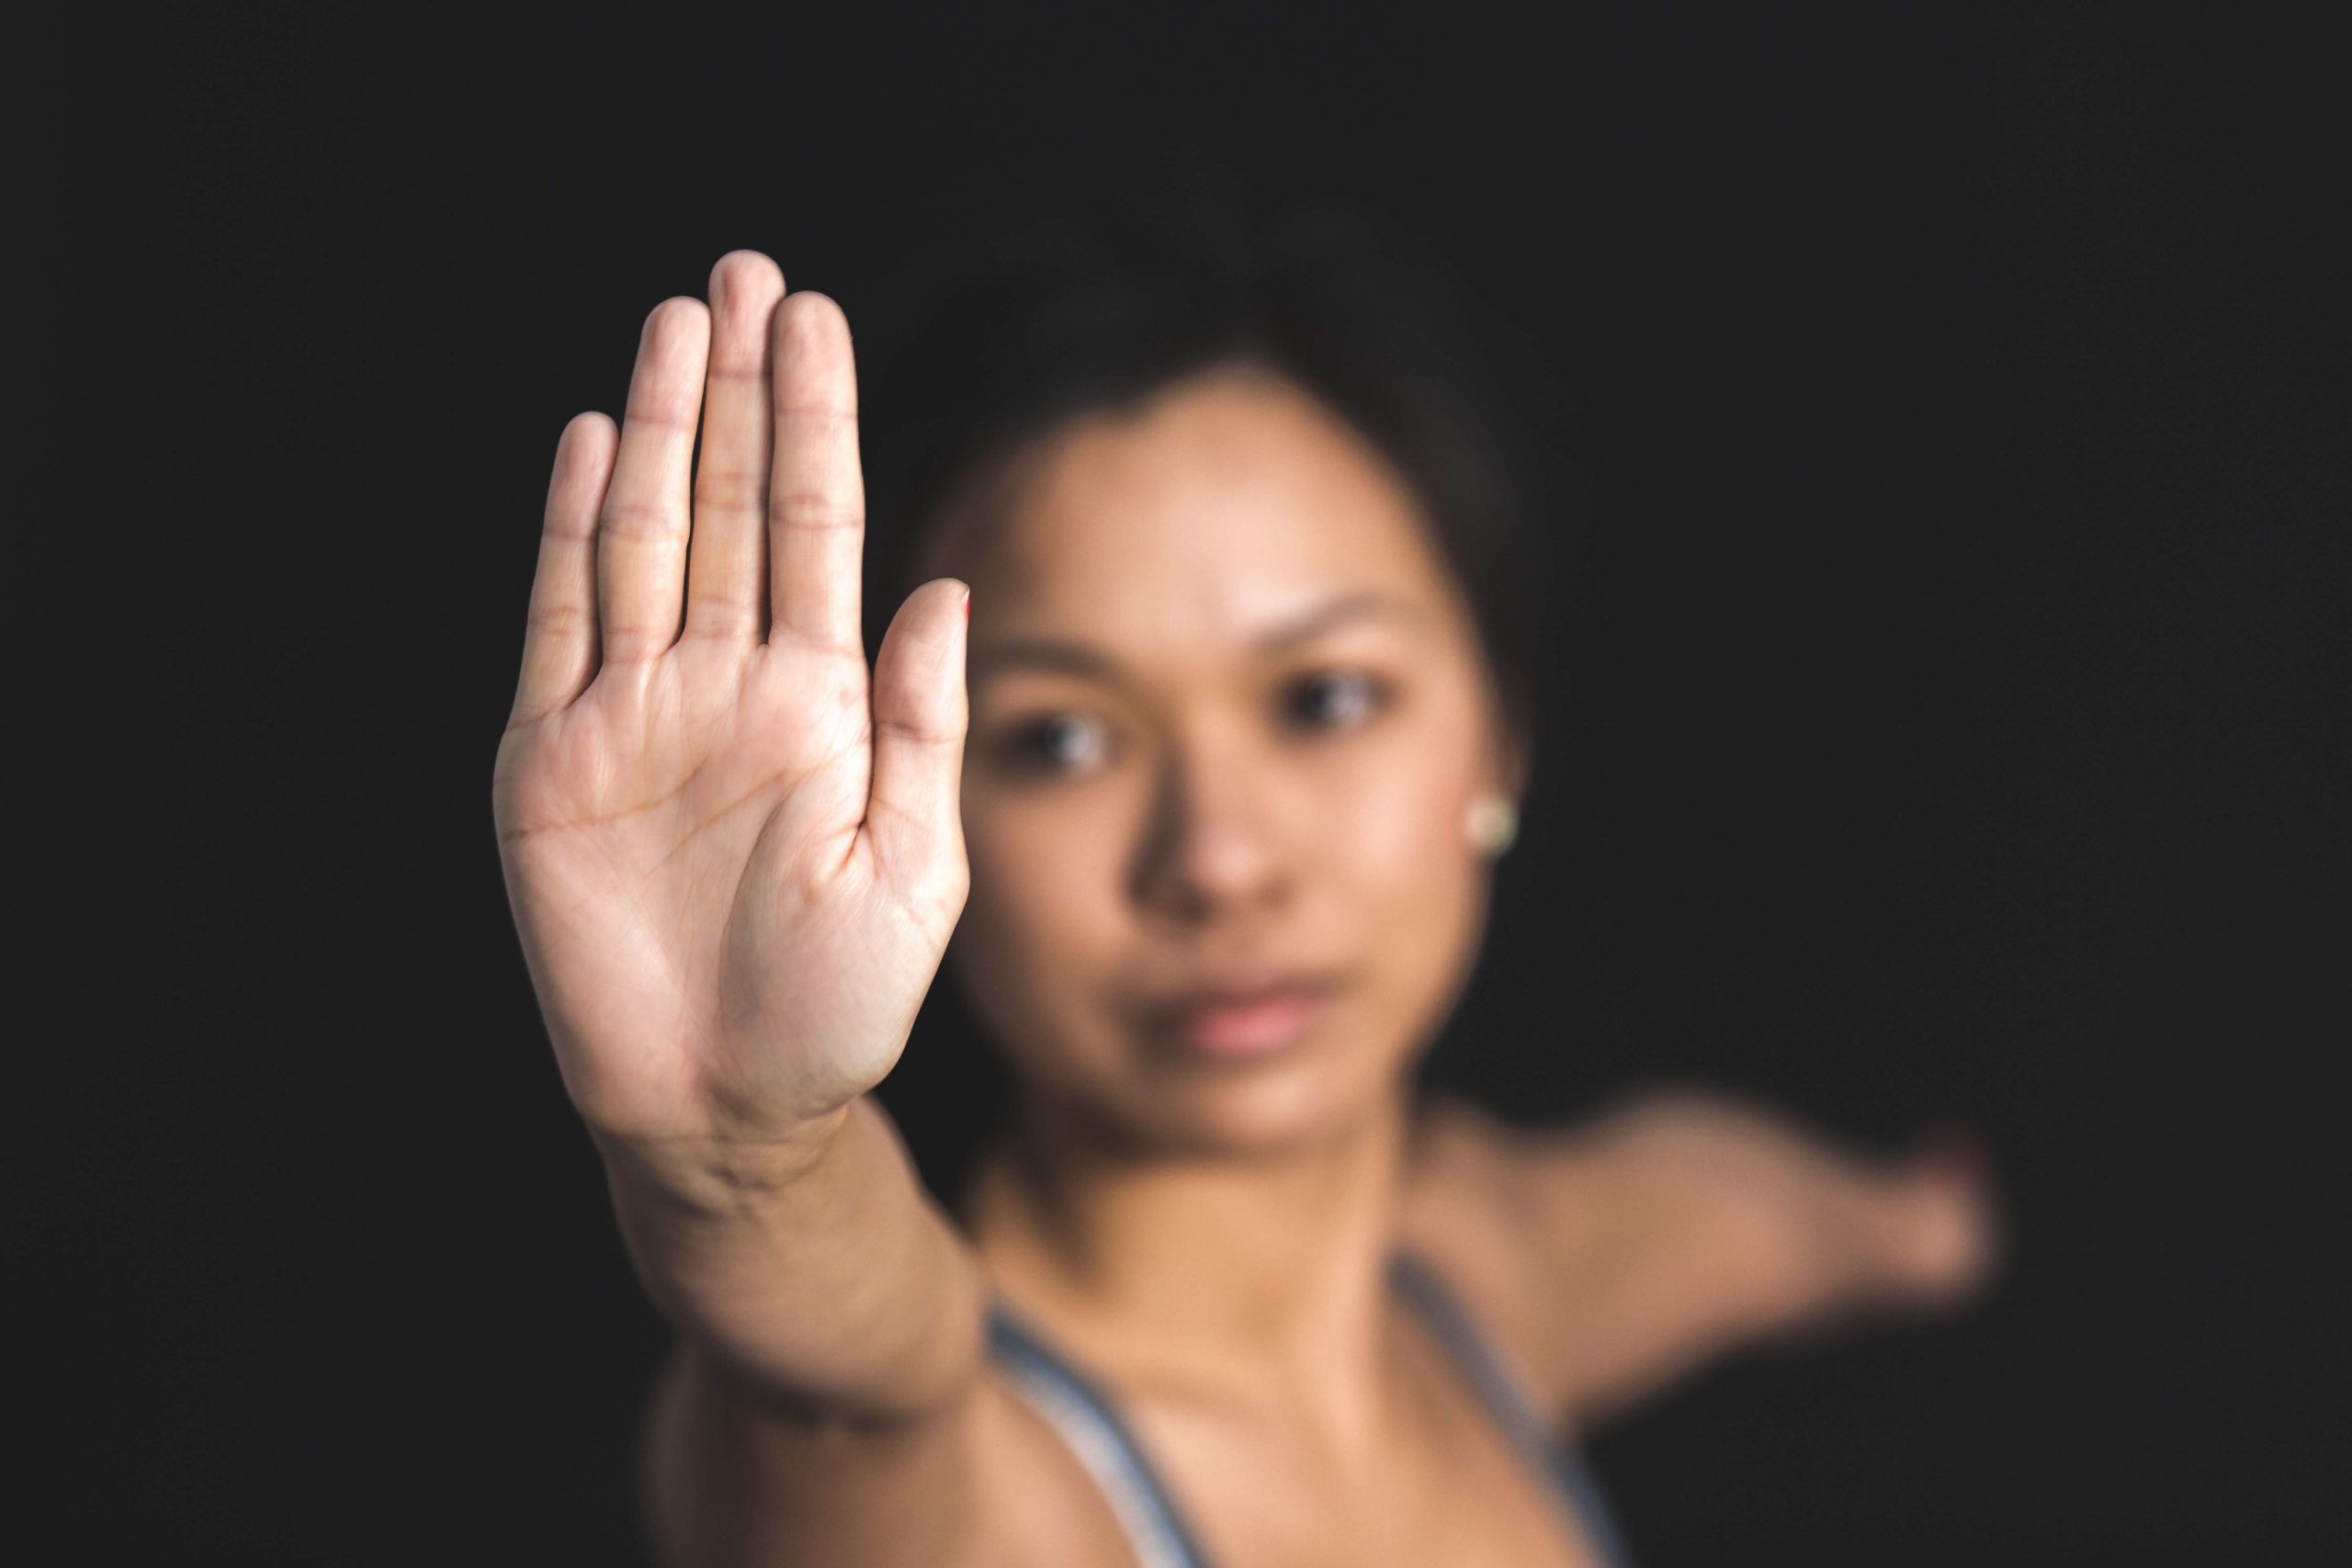 Self-Defense For Sexual Assault Survivors